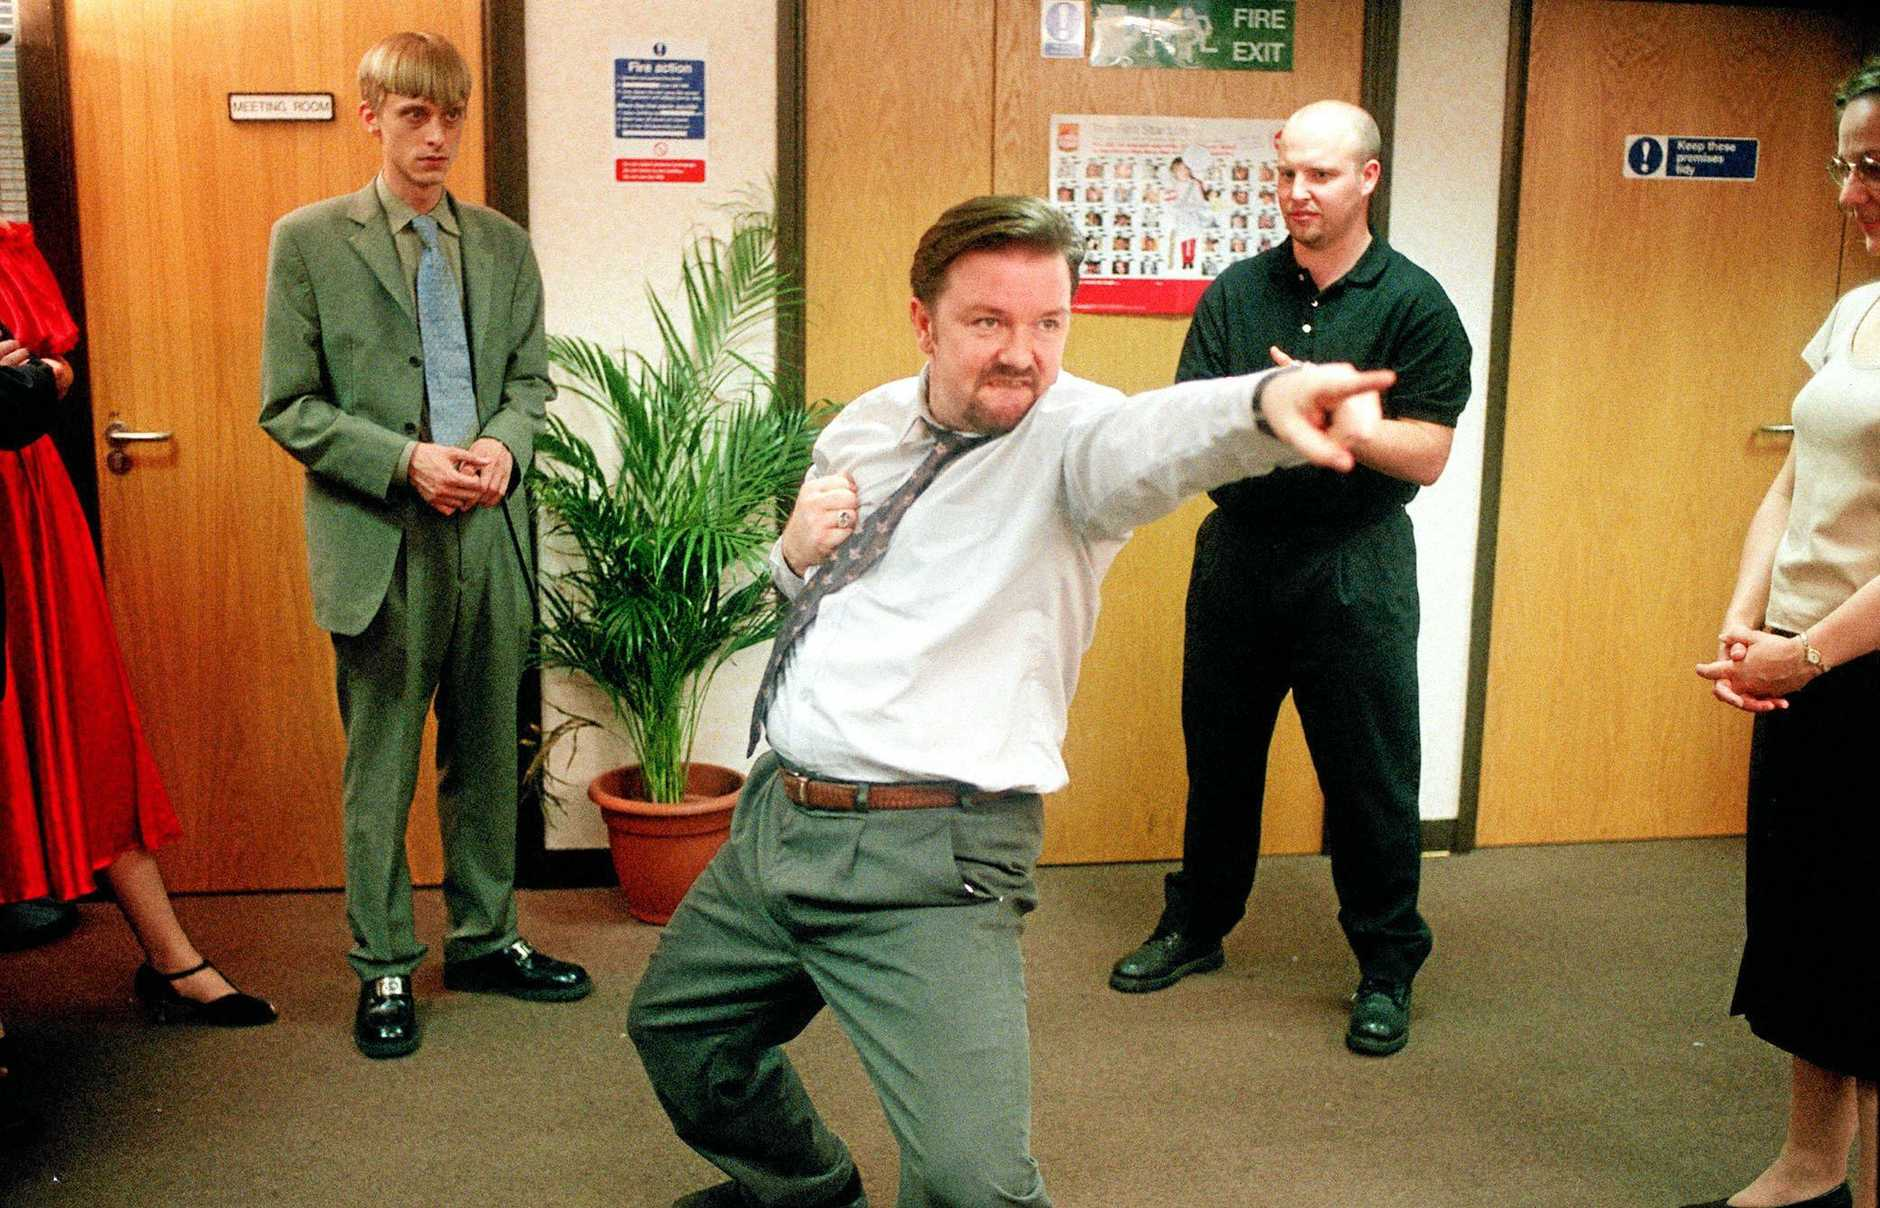 Ricky Gervais as David Brent in The Office.